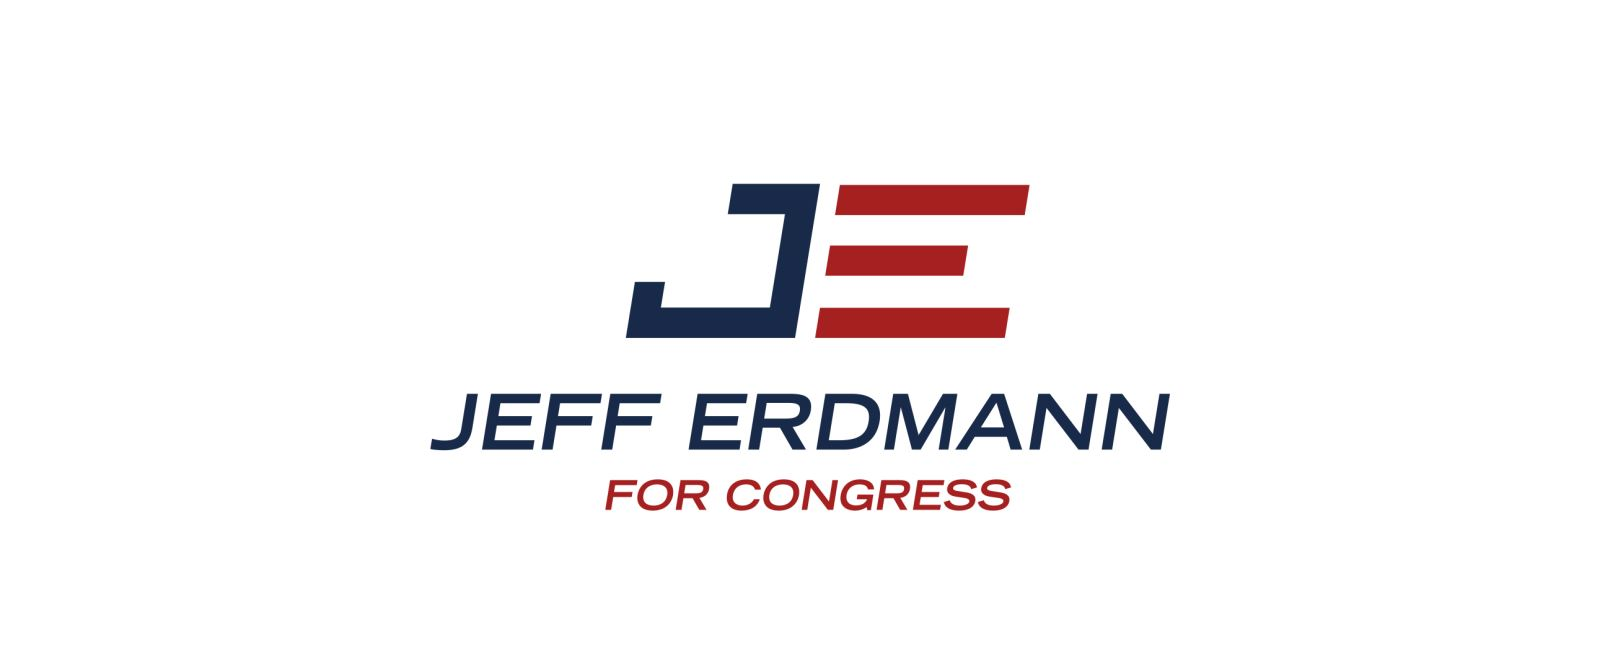 Official Website of Jeff Erdmann for Congress